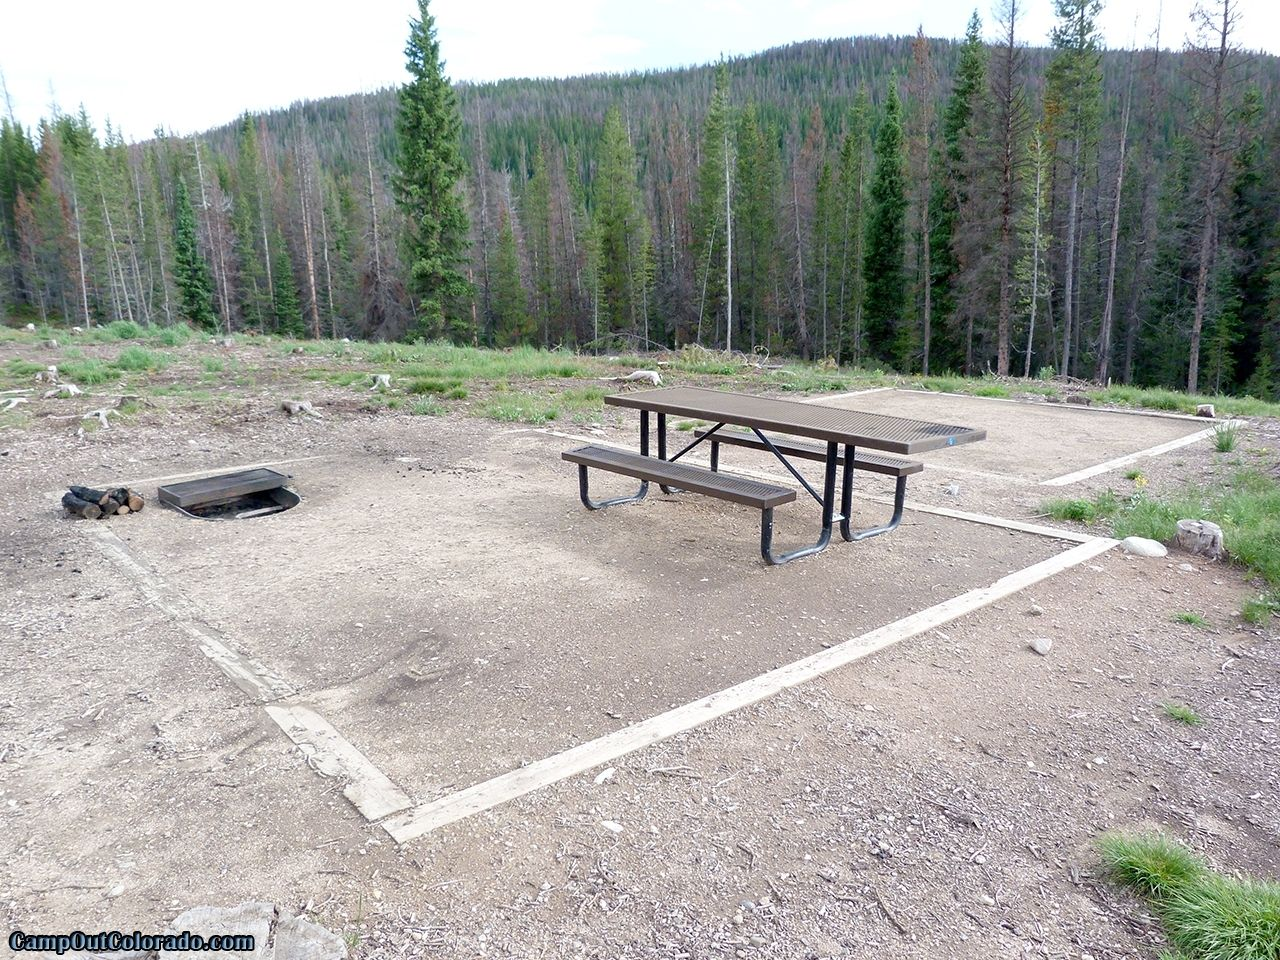 Here Is Our Review Of Ranger Lakes Campground In State Forest State Park Http Www Campoutcolorado Com Ranger Lakes Campg Campground State Parks State Forest